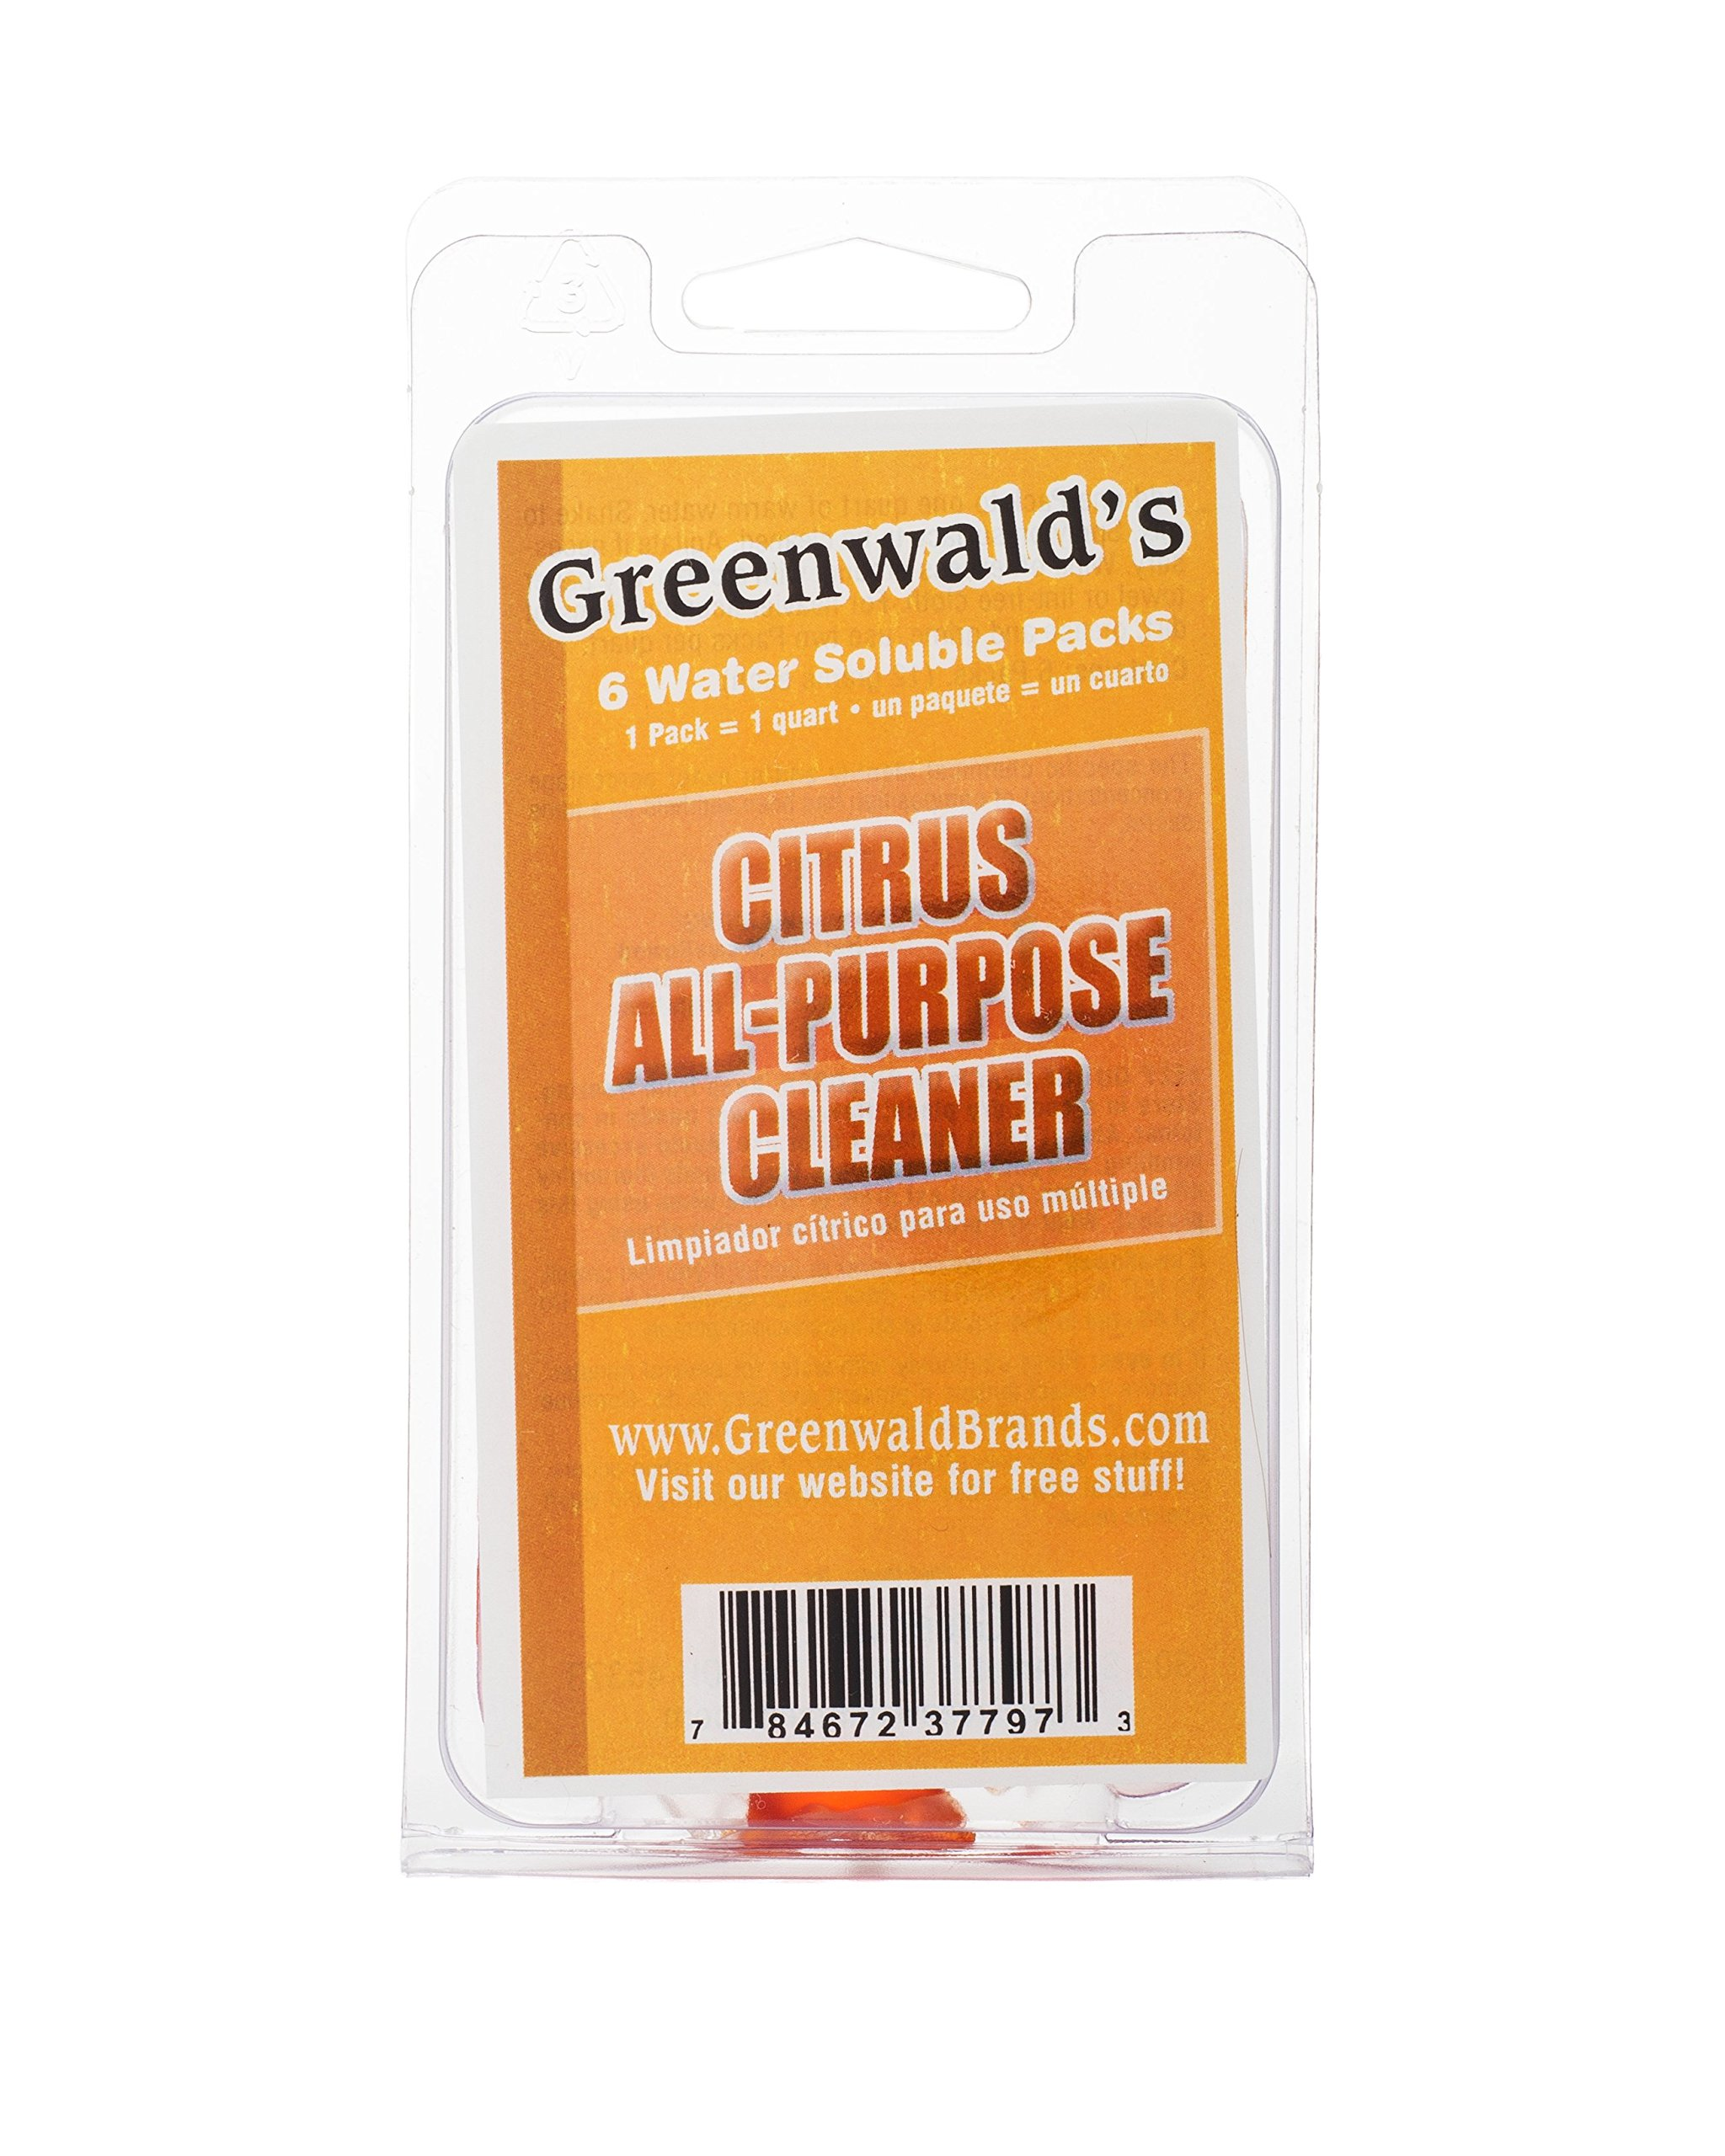 Greenwald's All Purpose Cleaner Refill Tablets, Citrus, Pre-measured Liquid Concentrate Makes 6 32 Ounce Spray Bottles, Degreaser and Dirt, Grime, Mildew, Mold Remover, for Home, Car, Office Cleaning